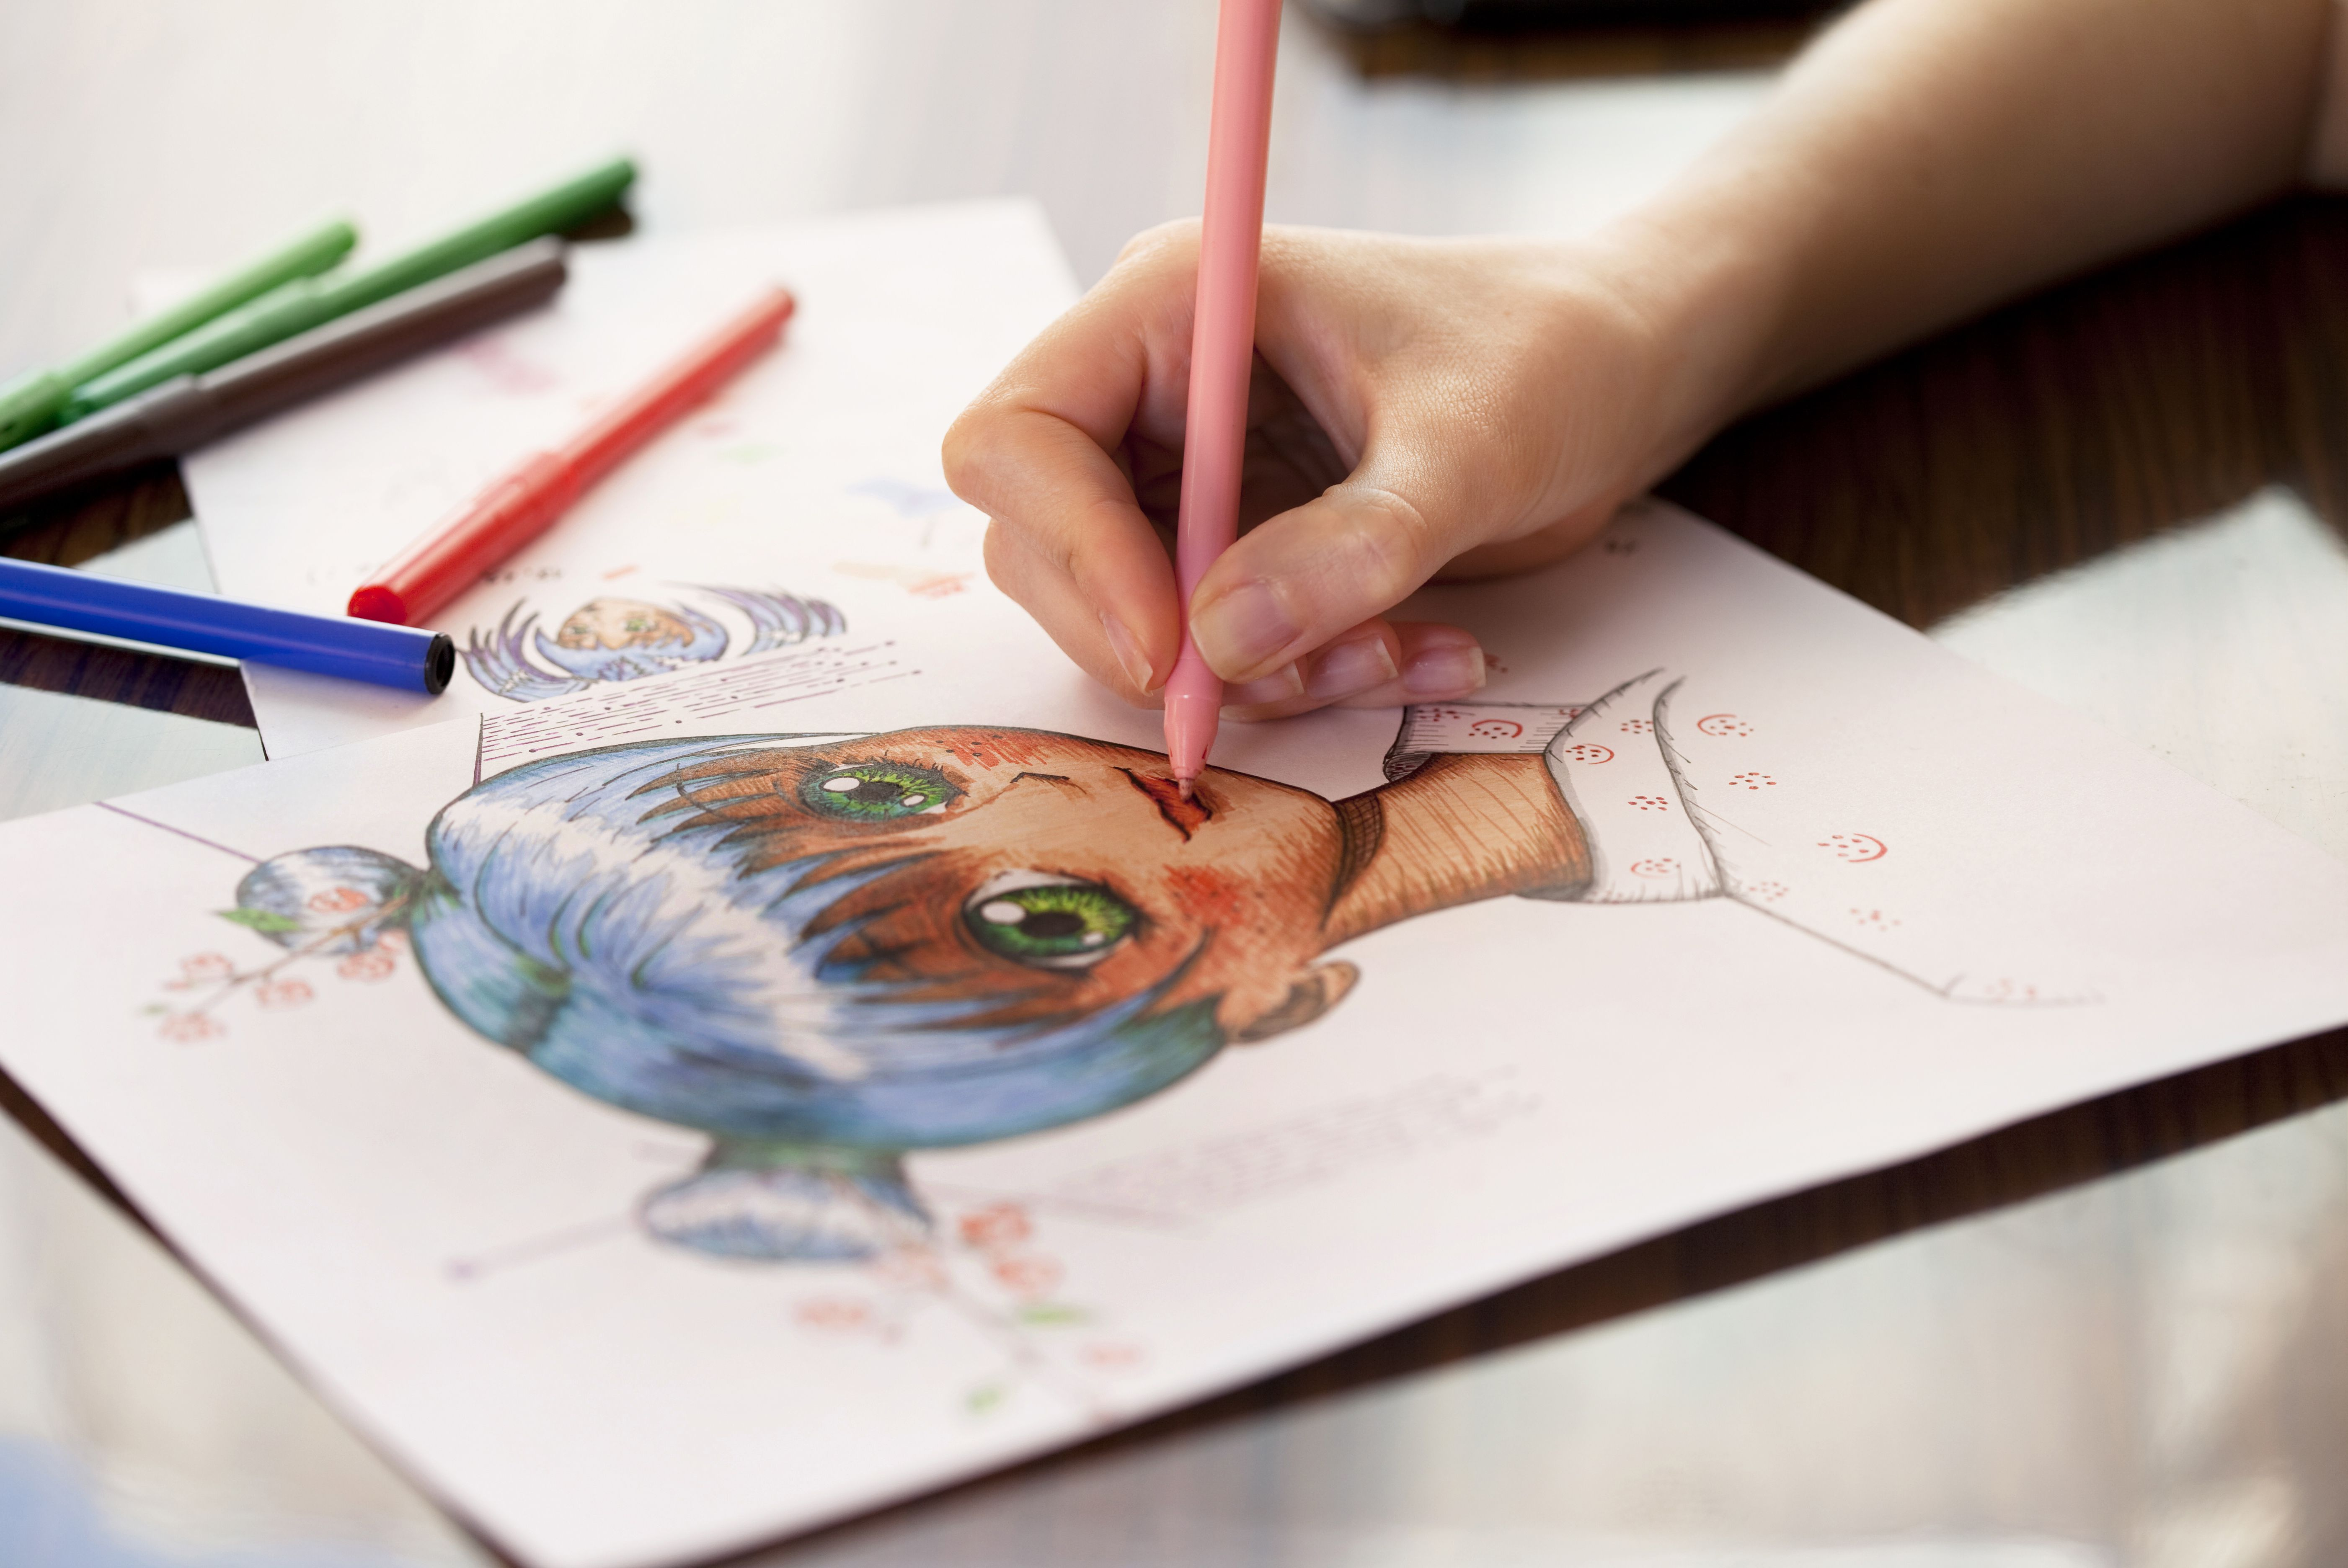 Draw a manga face with these easy steps